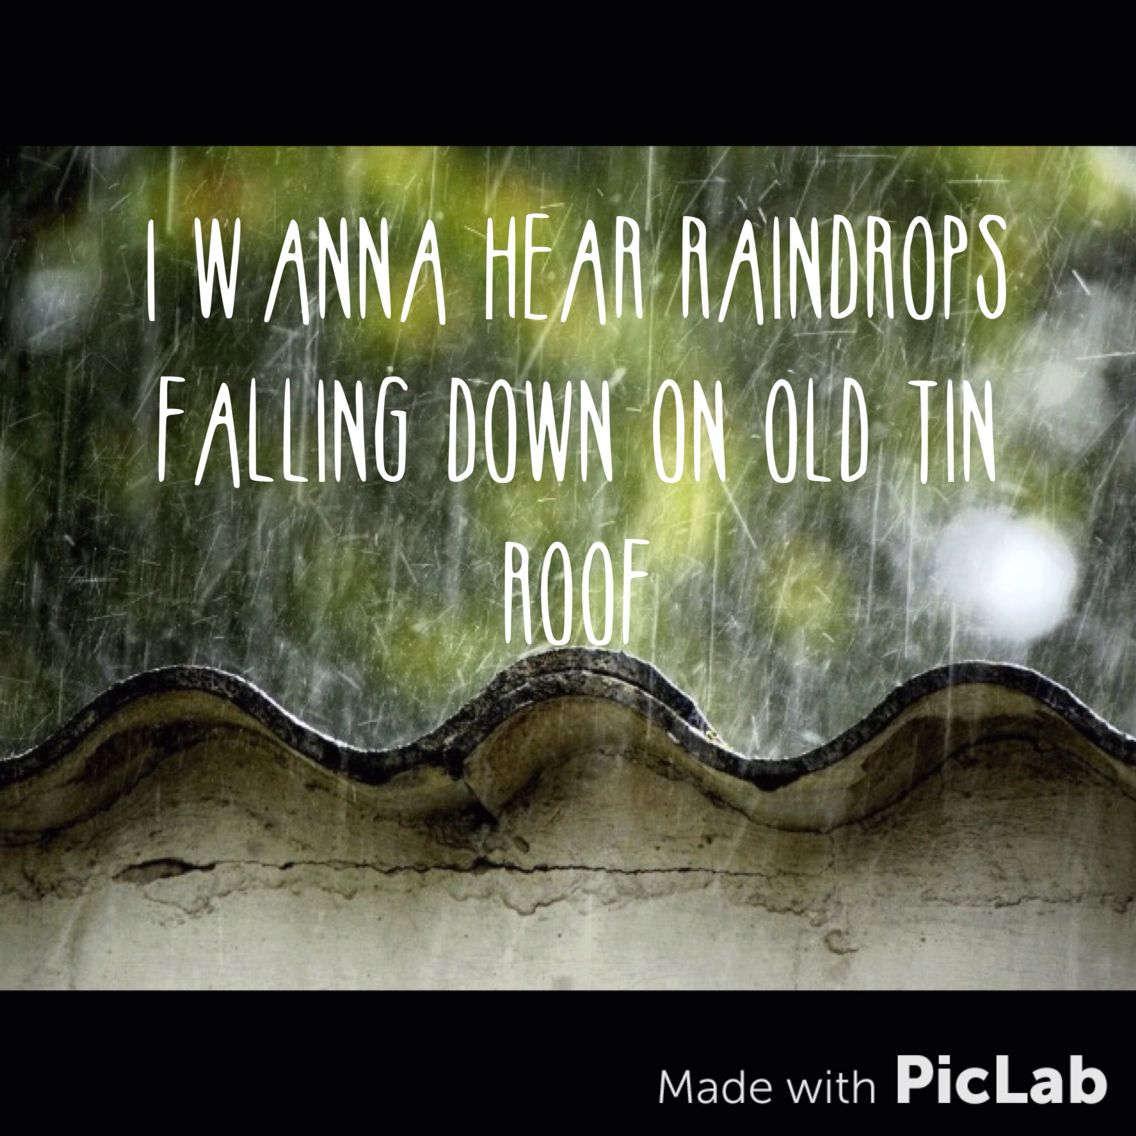 Roof is falling song